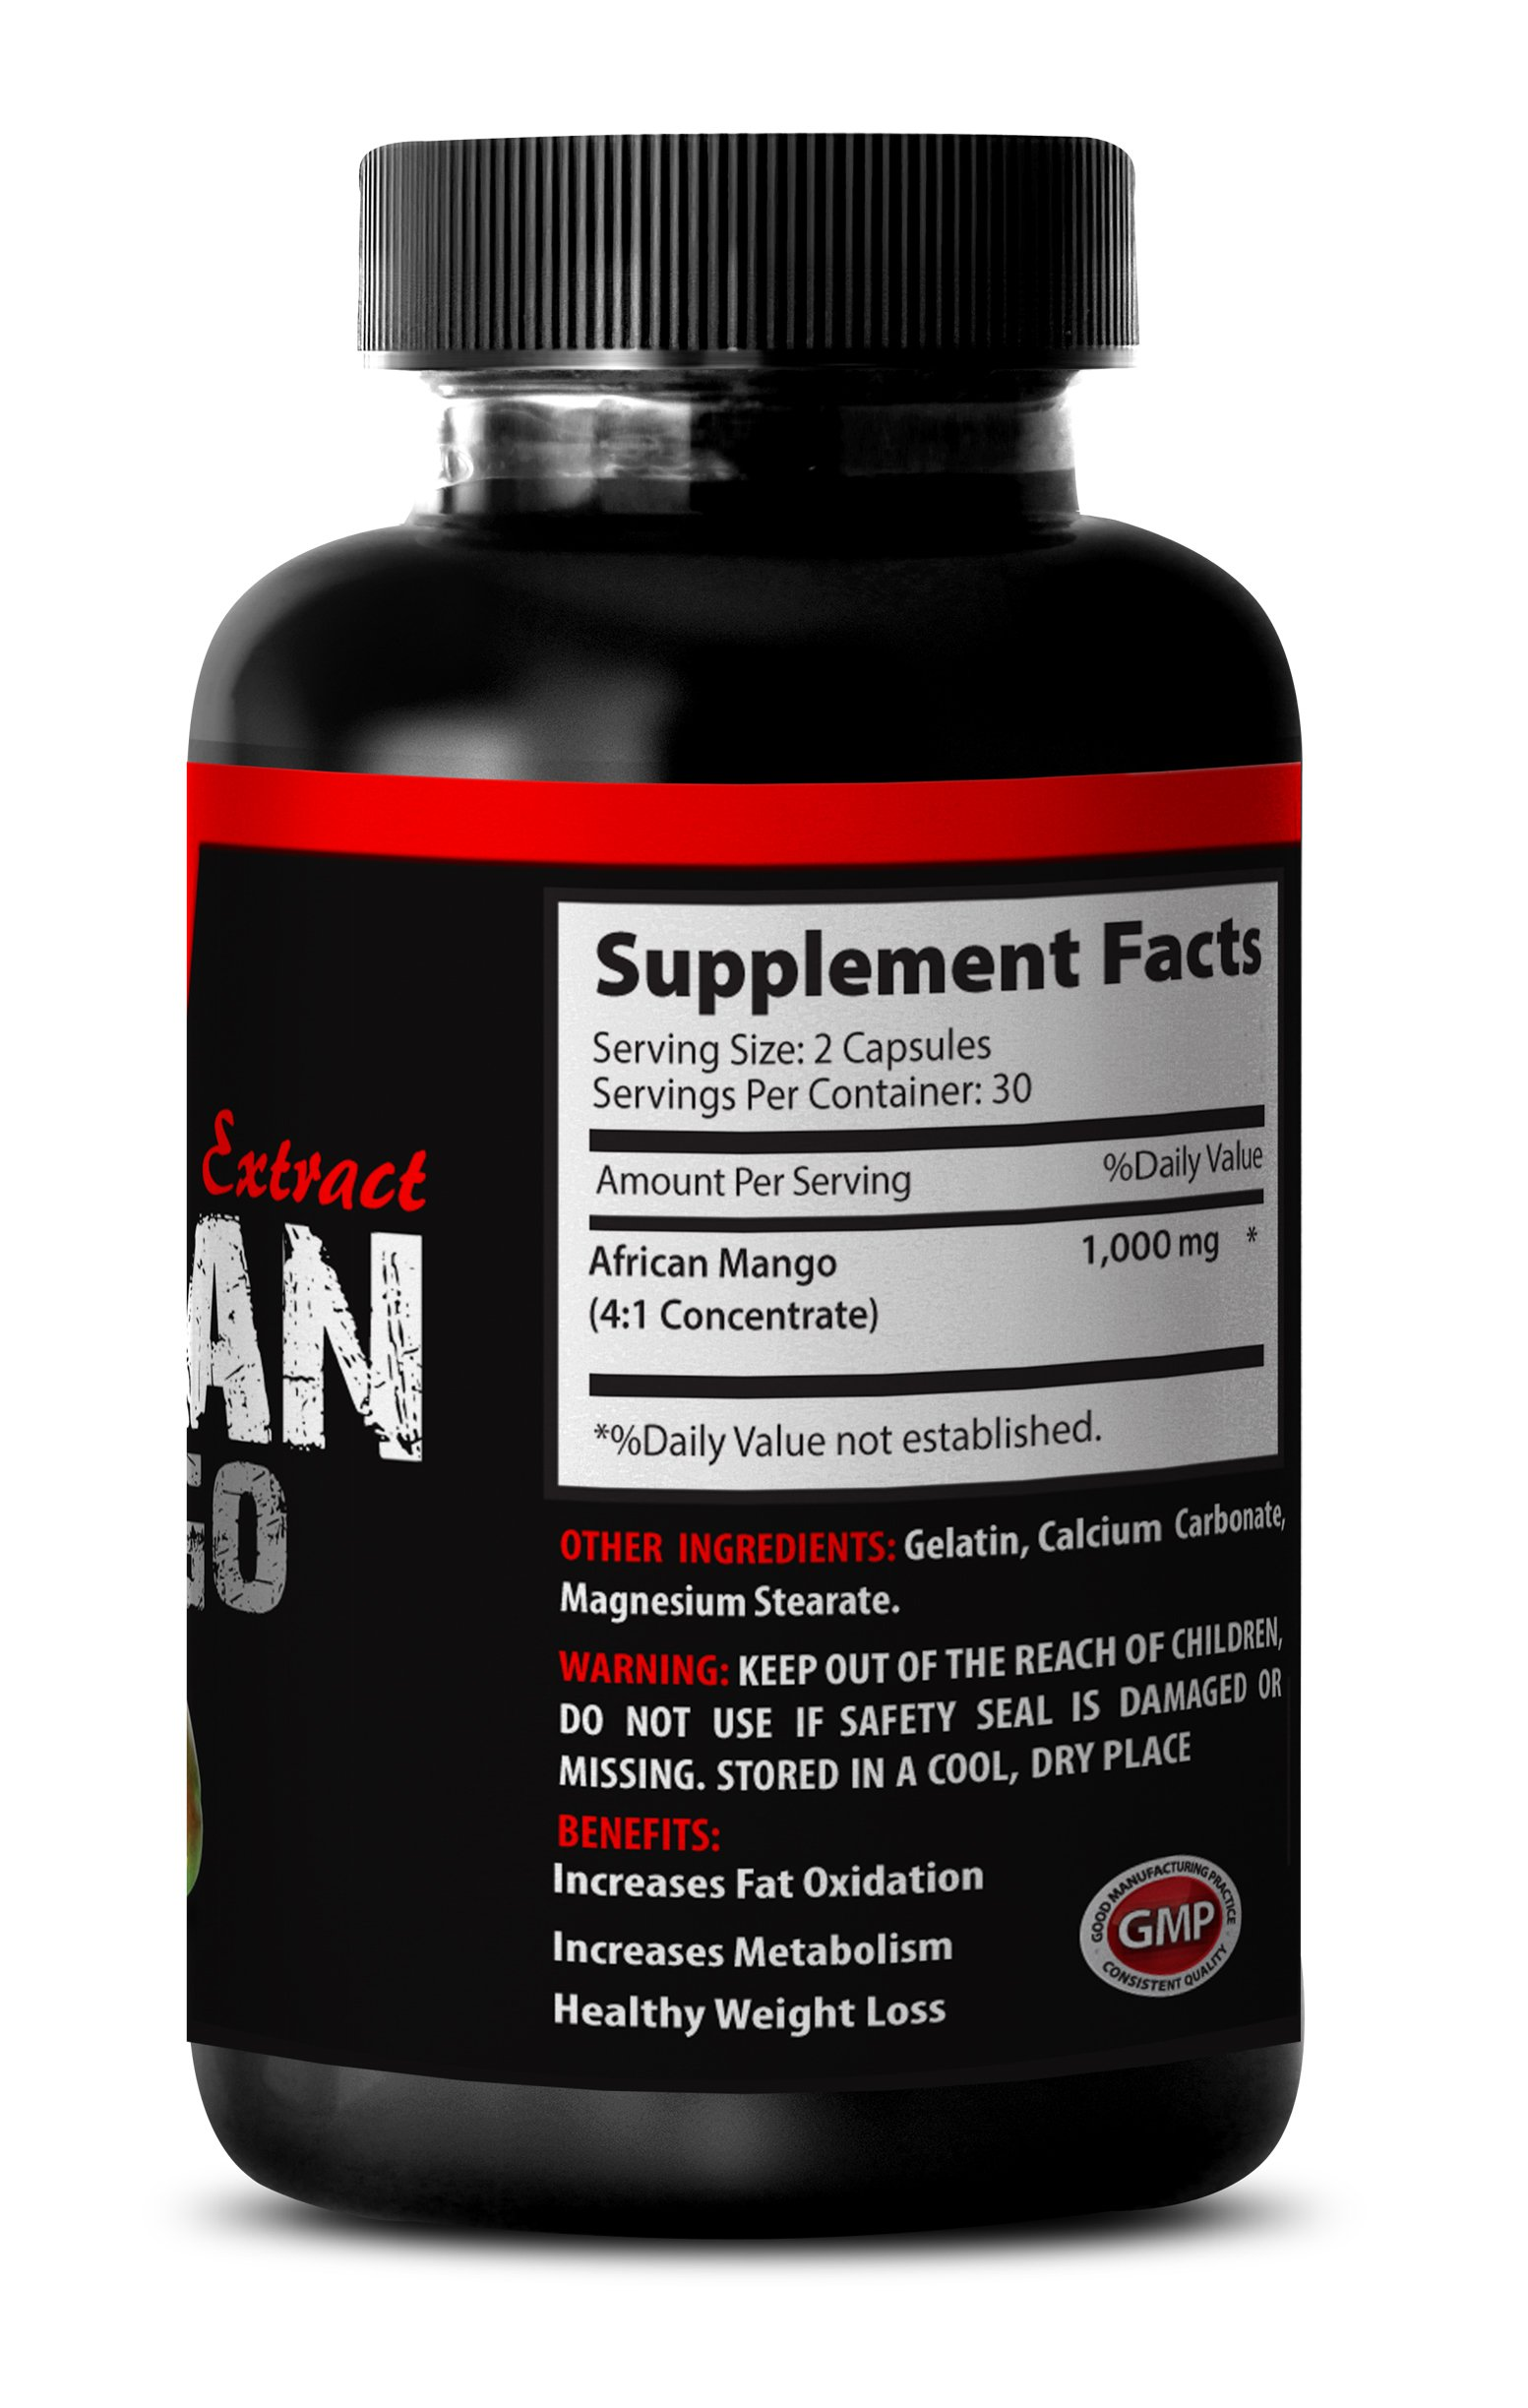 Supreme African Mango Weight Loss- African Mango 1000mg - African Mango Extract - Weight Loss (6 Bottles 360 Capsules) by MANGO (Image #4)